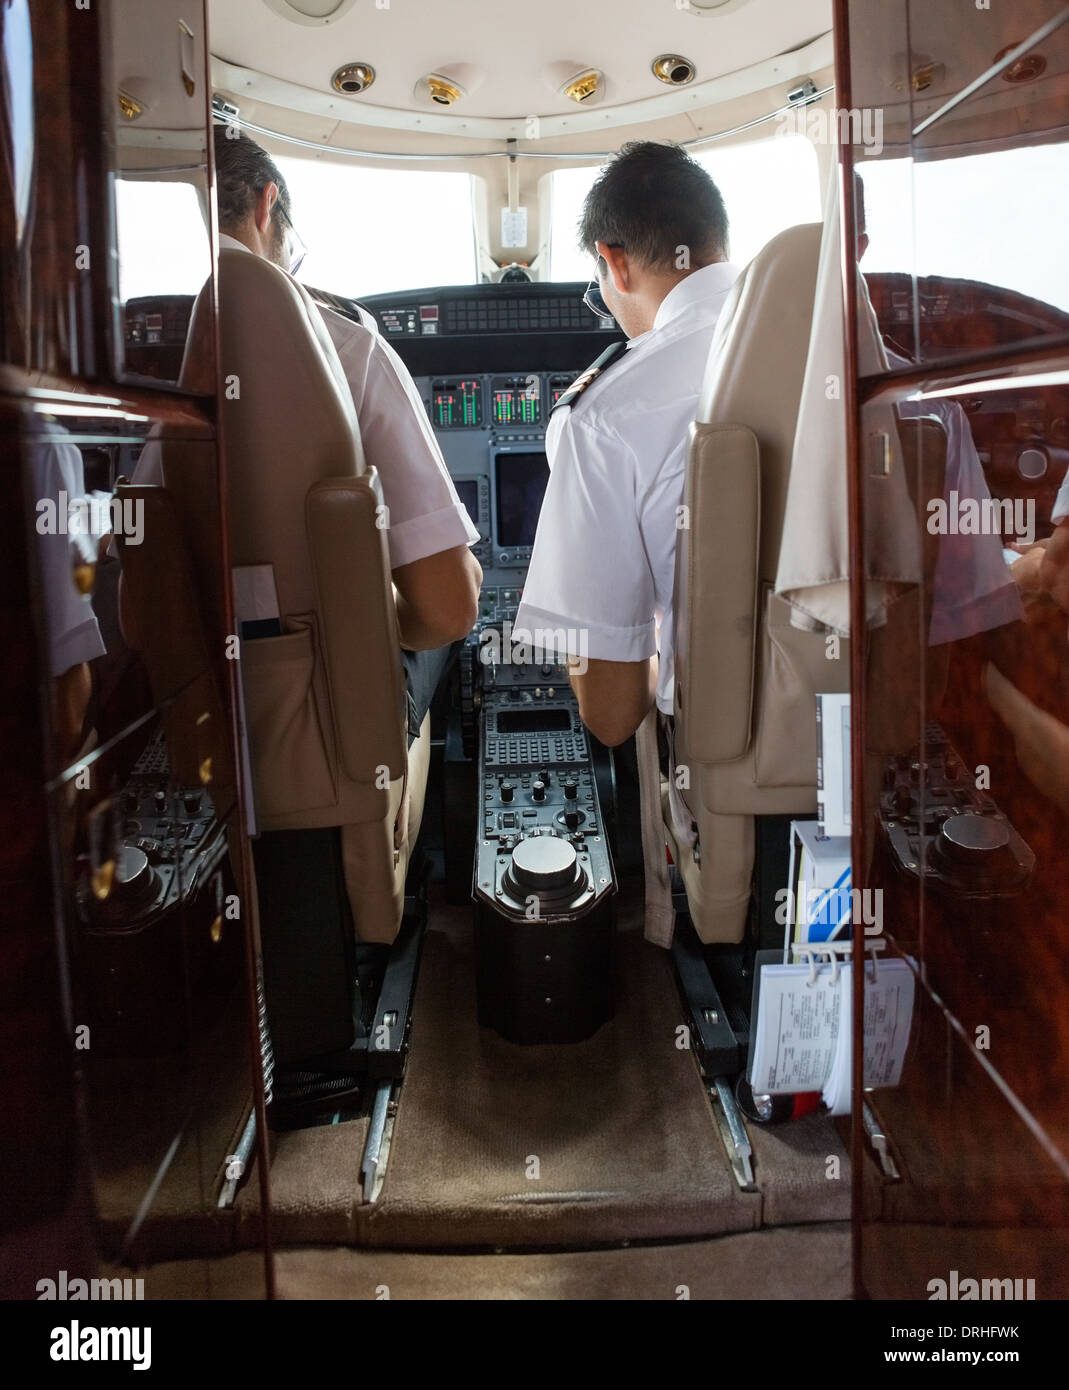 Pilot And Copilot Operating Private Jet - Stock Image